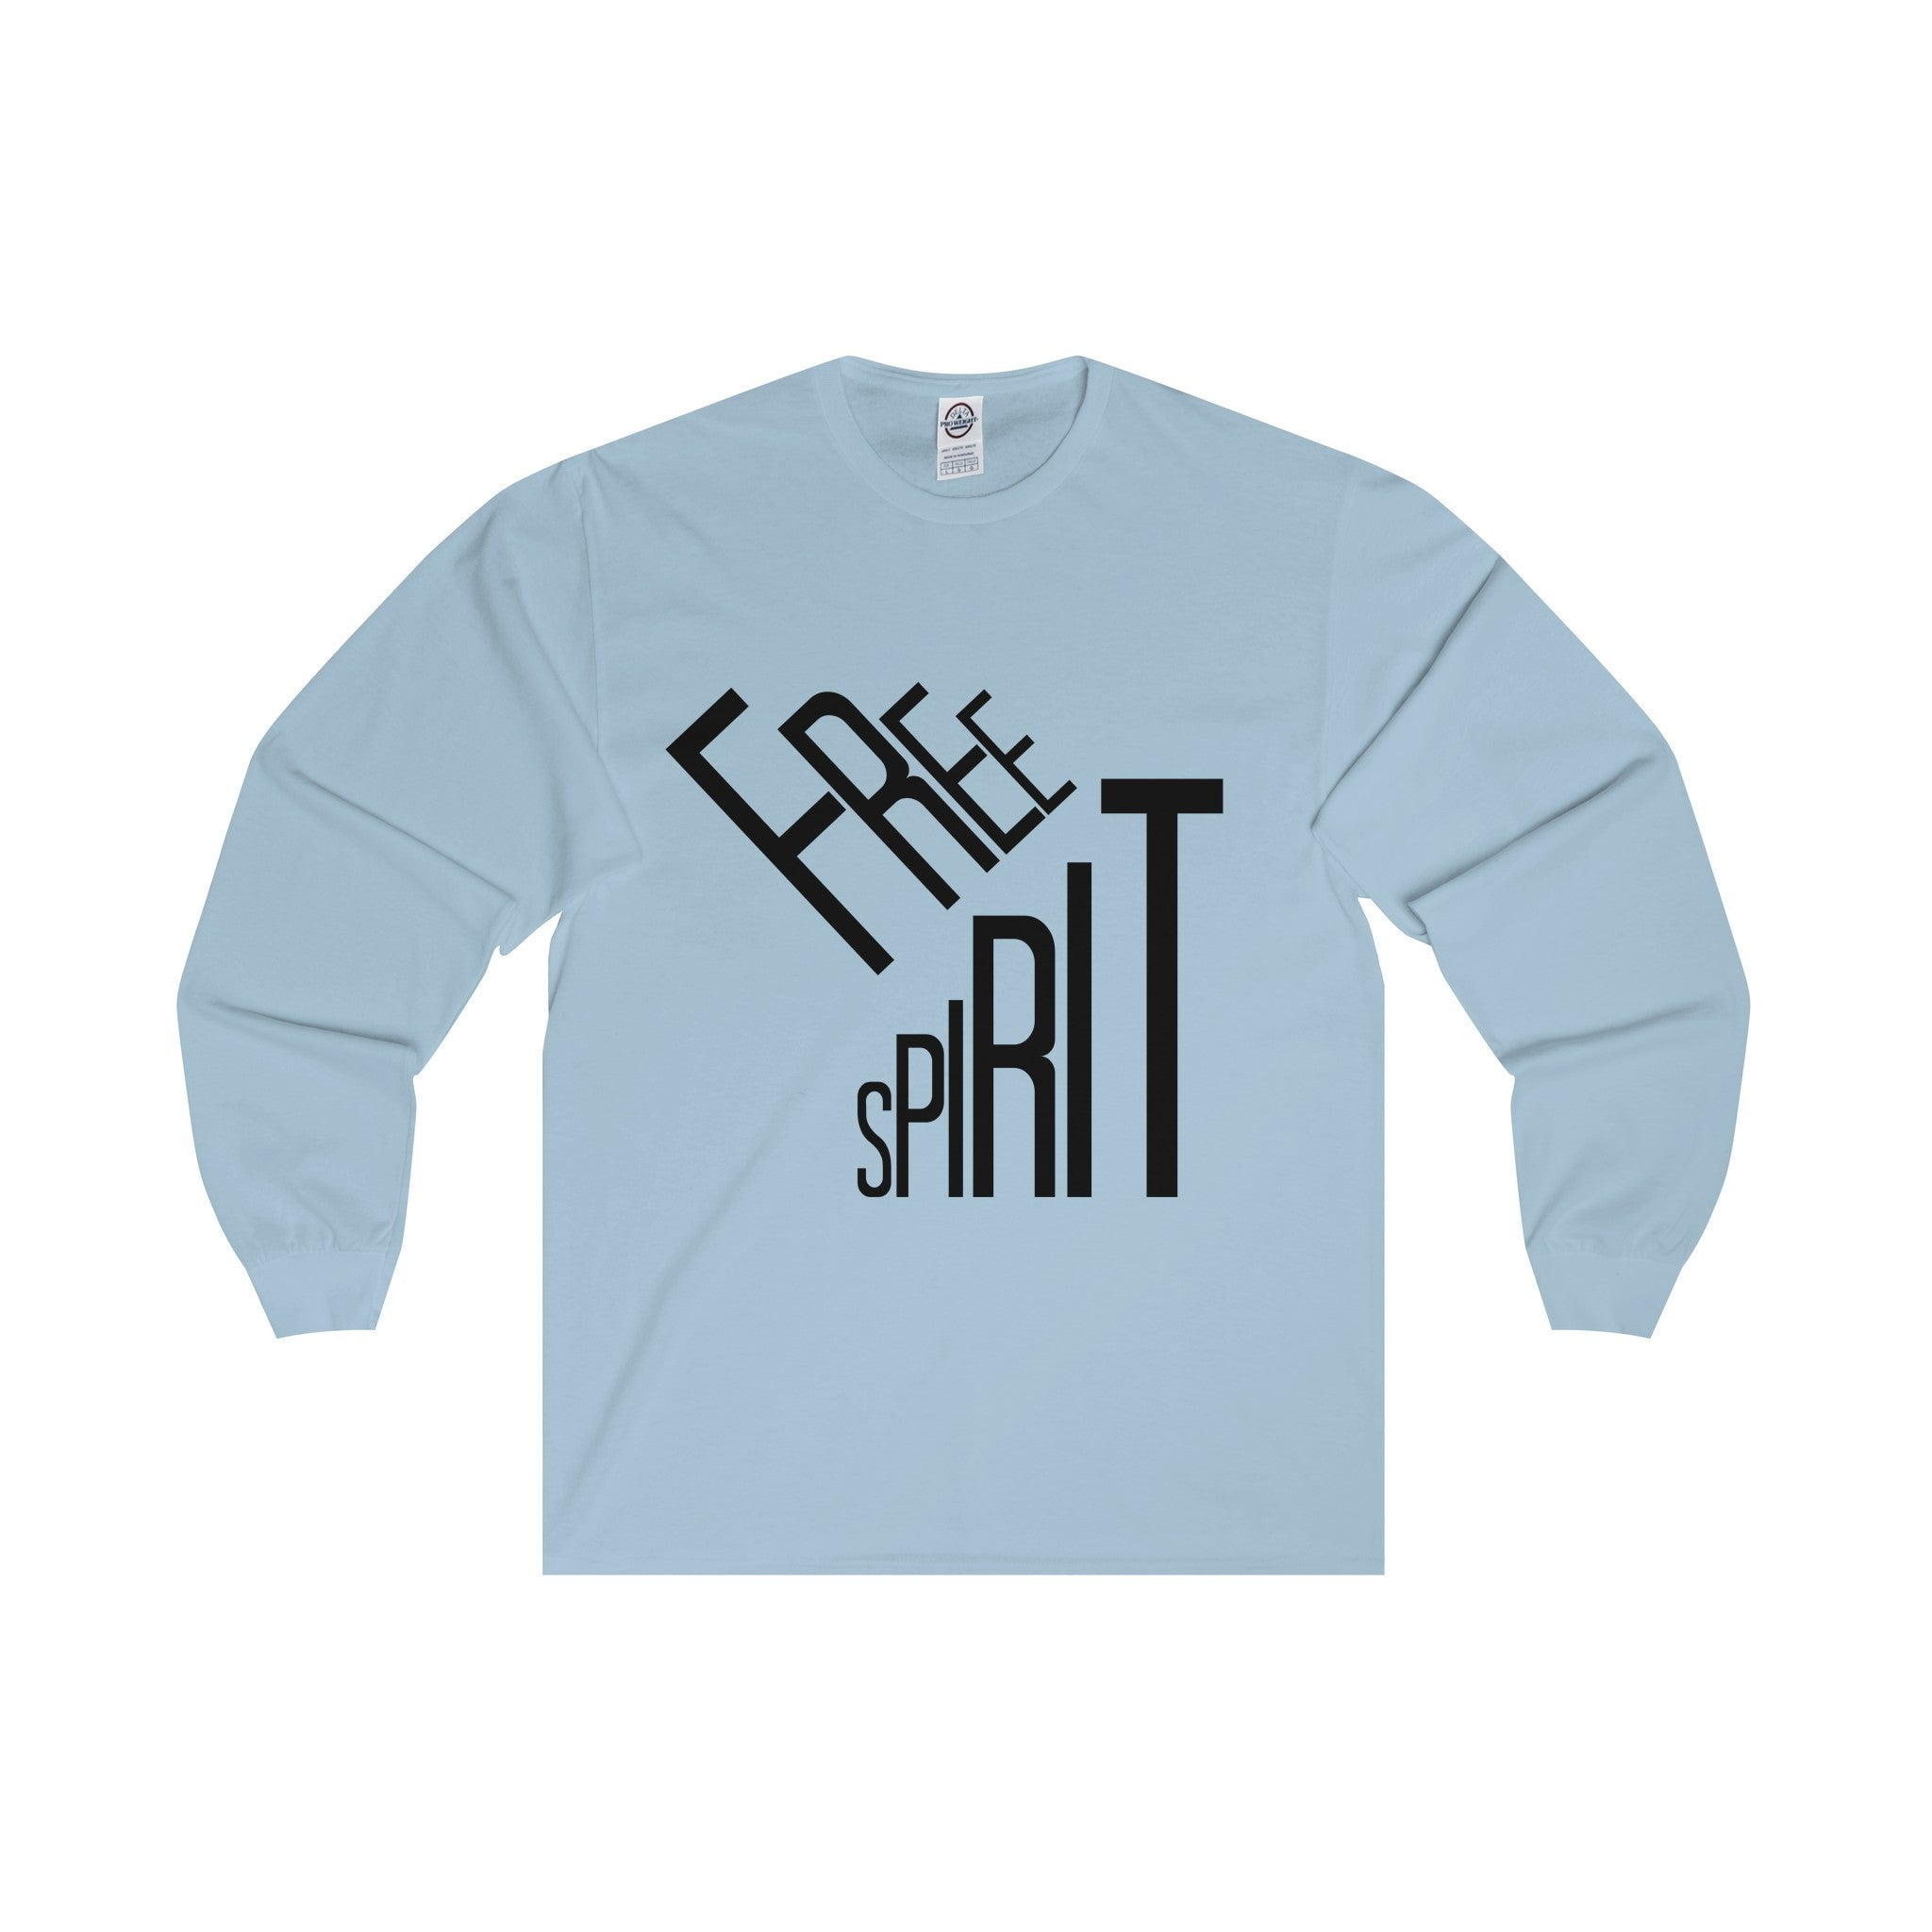 Free Spirit Black Letter Long Sleeve Tee (5 colors available)